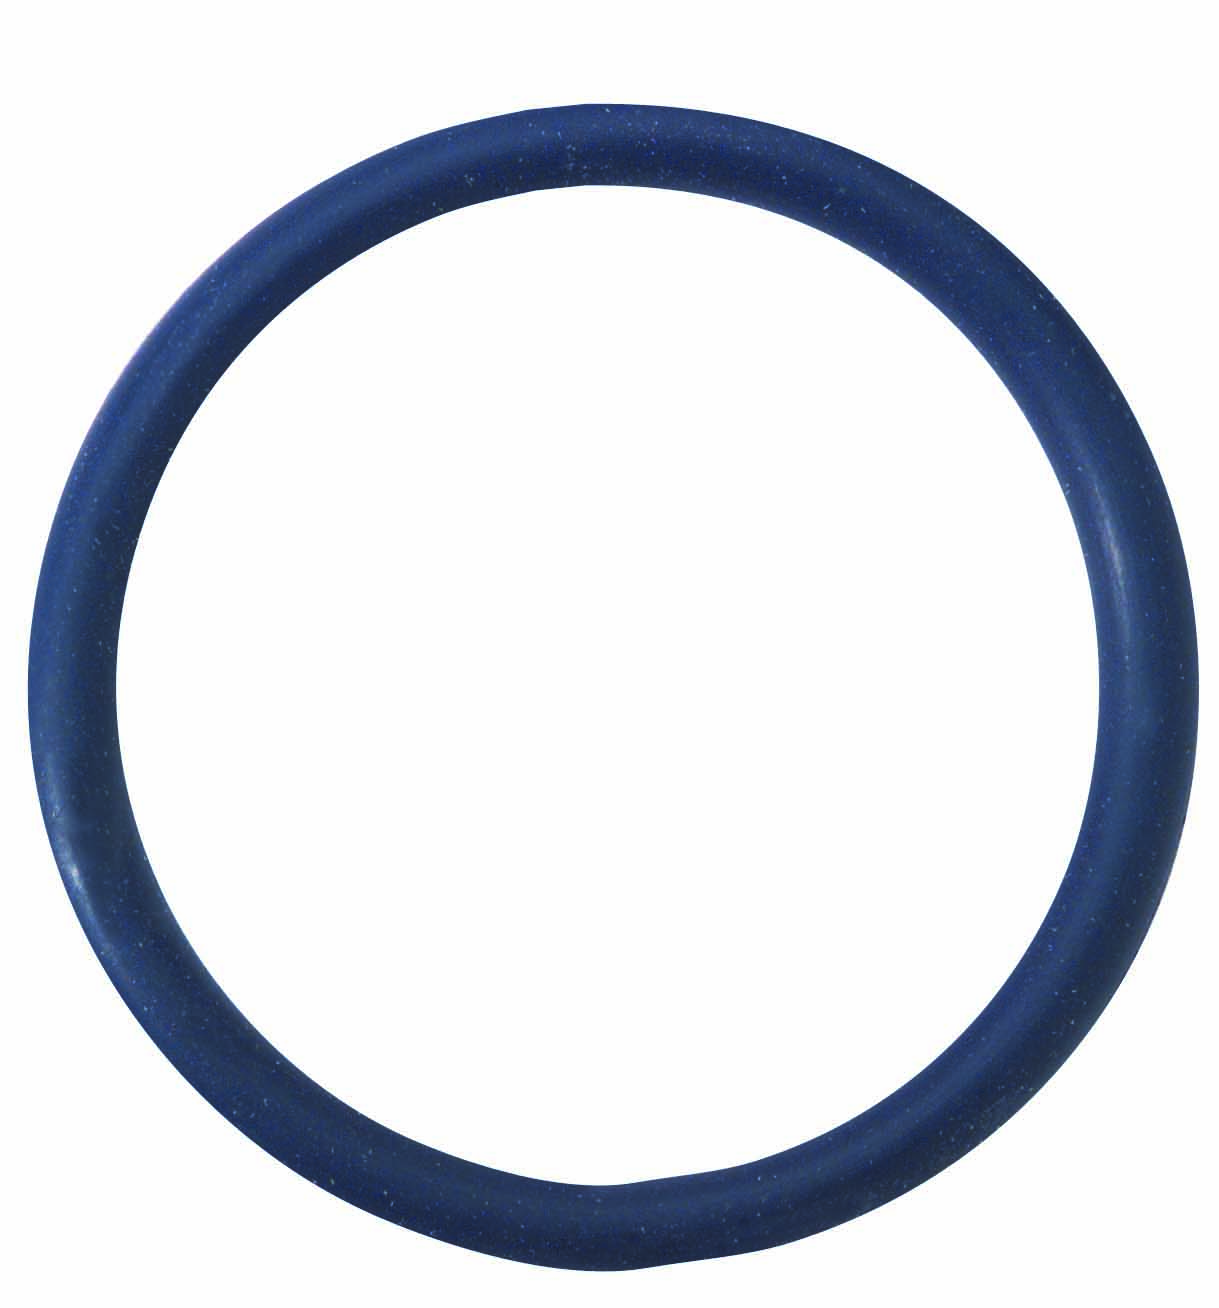 Blue Rubber C Ring - 2 in 5.08 cm